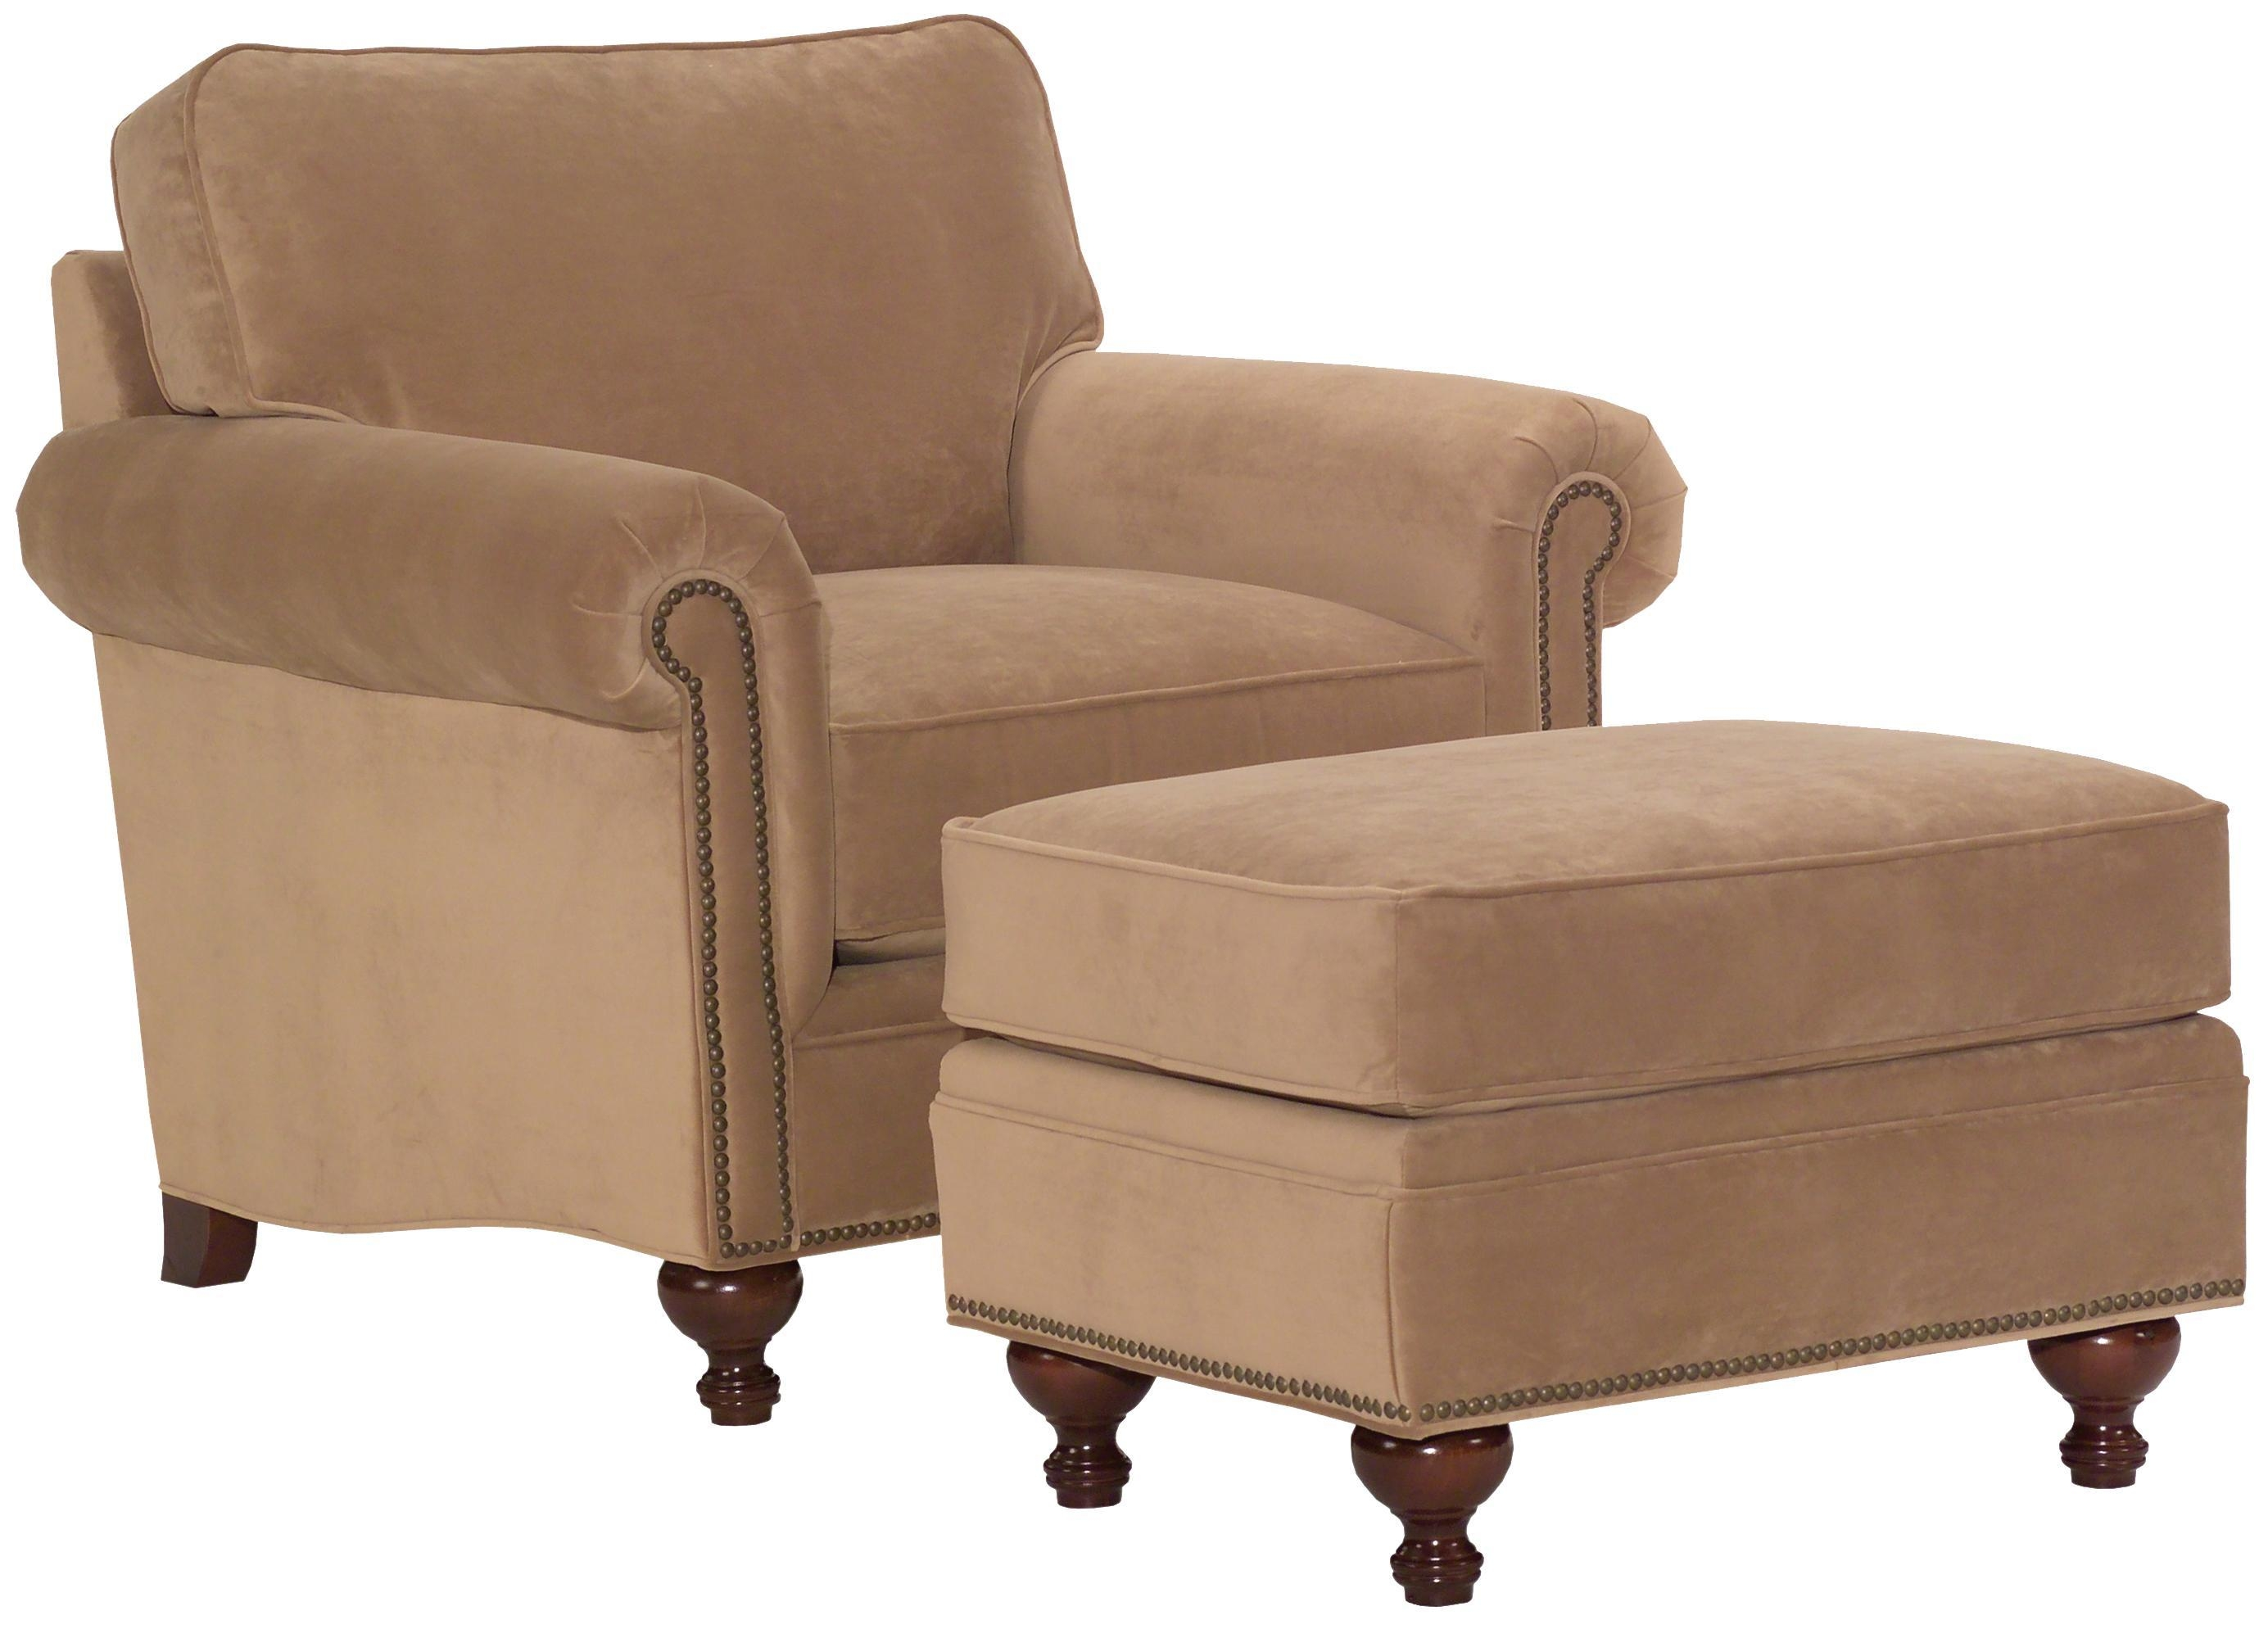 Broyhill Furniture Harrison Traditional Style Chair And Ottoman For Broyhill Harrison Sofas (Image 8 of 20)